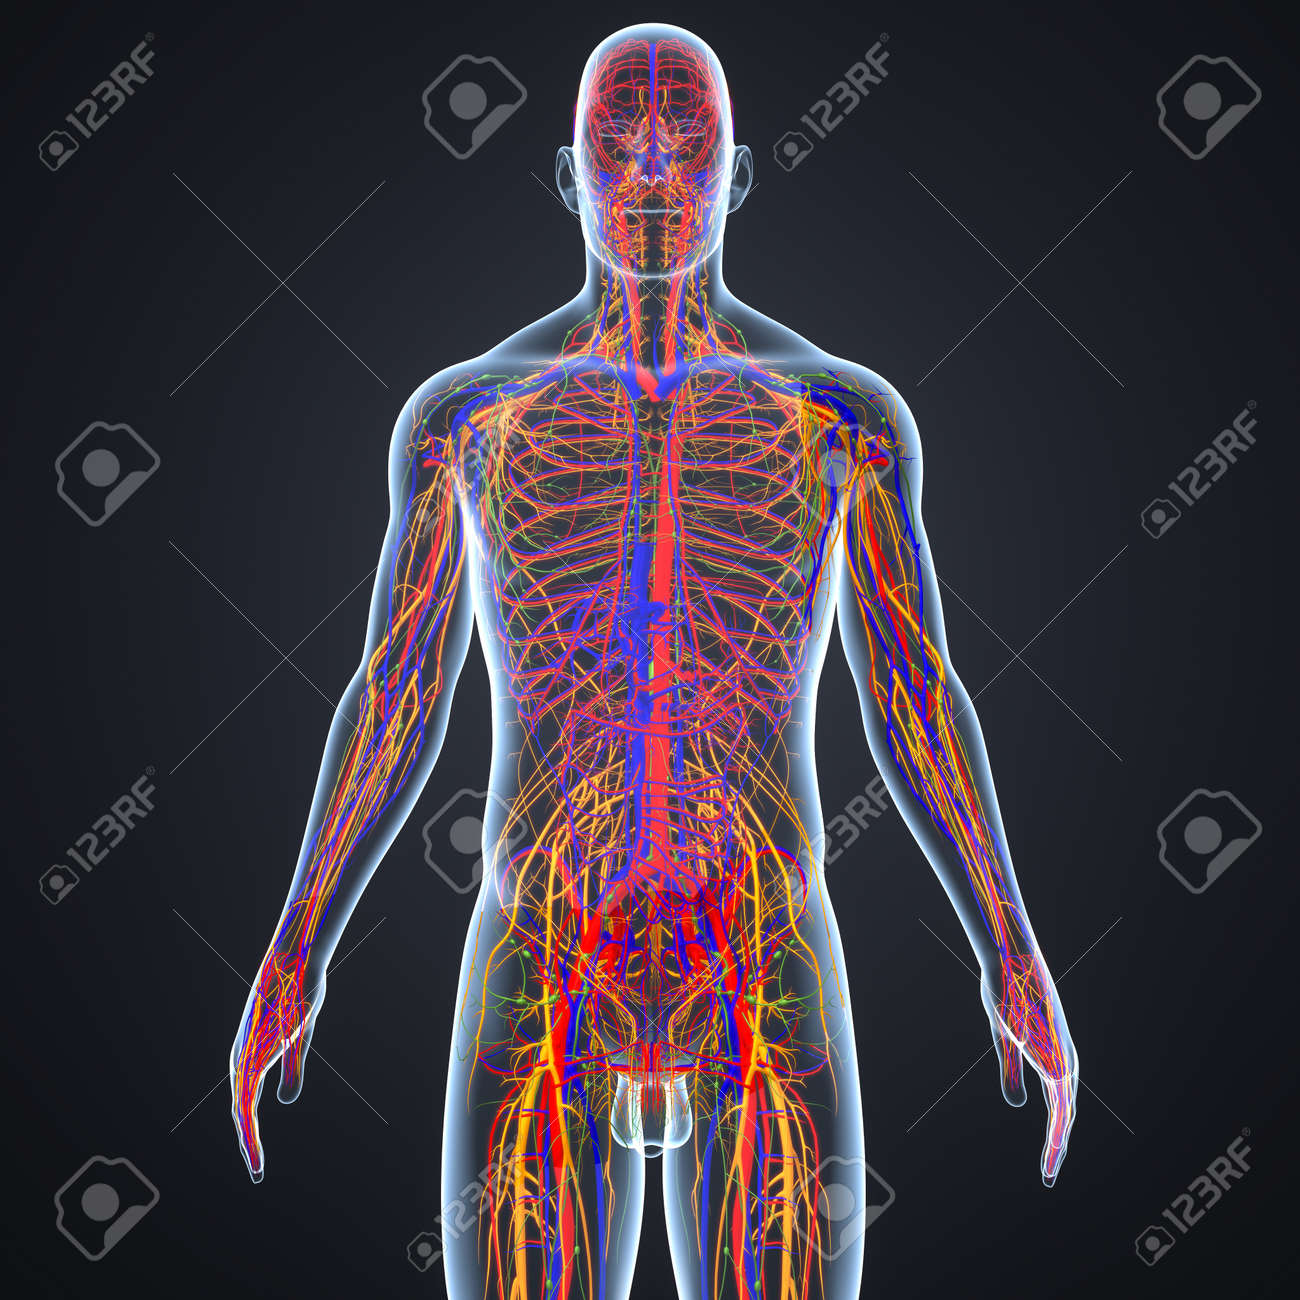 Circulatory and Nervous System with Lymph Nodes anterior view - 97027654